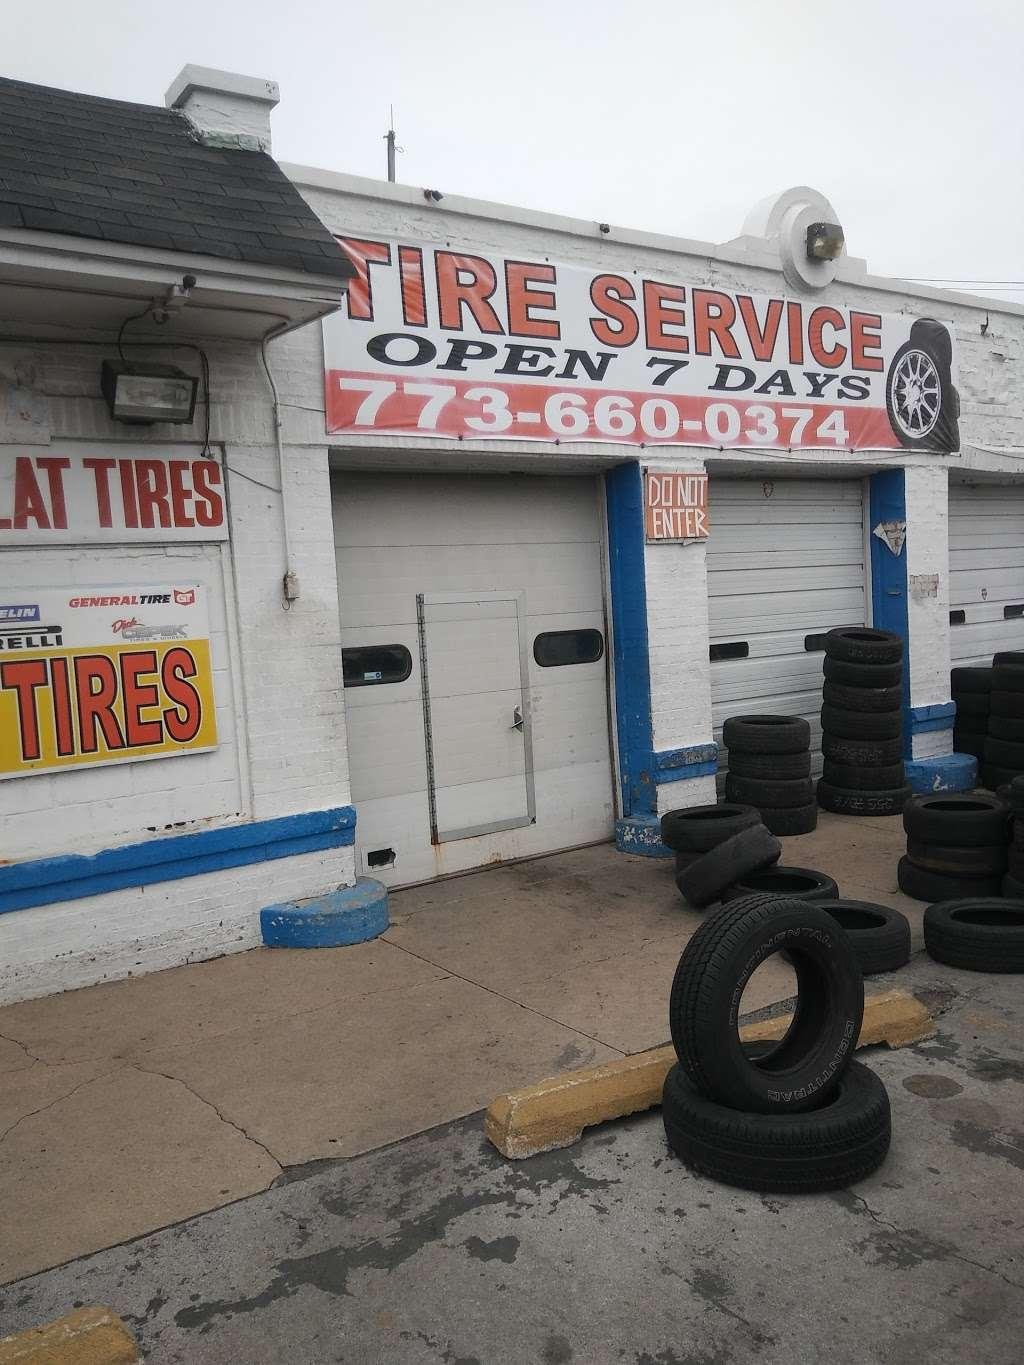 Babys DO Tire Shop - car repair  | Photo 1 of 6 | Address: 336 W 119th St, Chicago, IL 60628, USA | Phone: (773) 660-0374